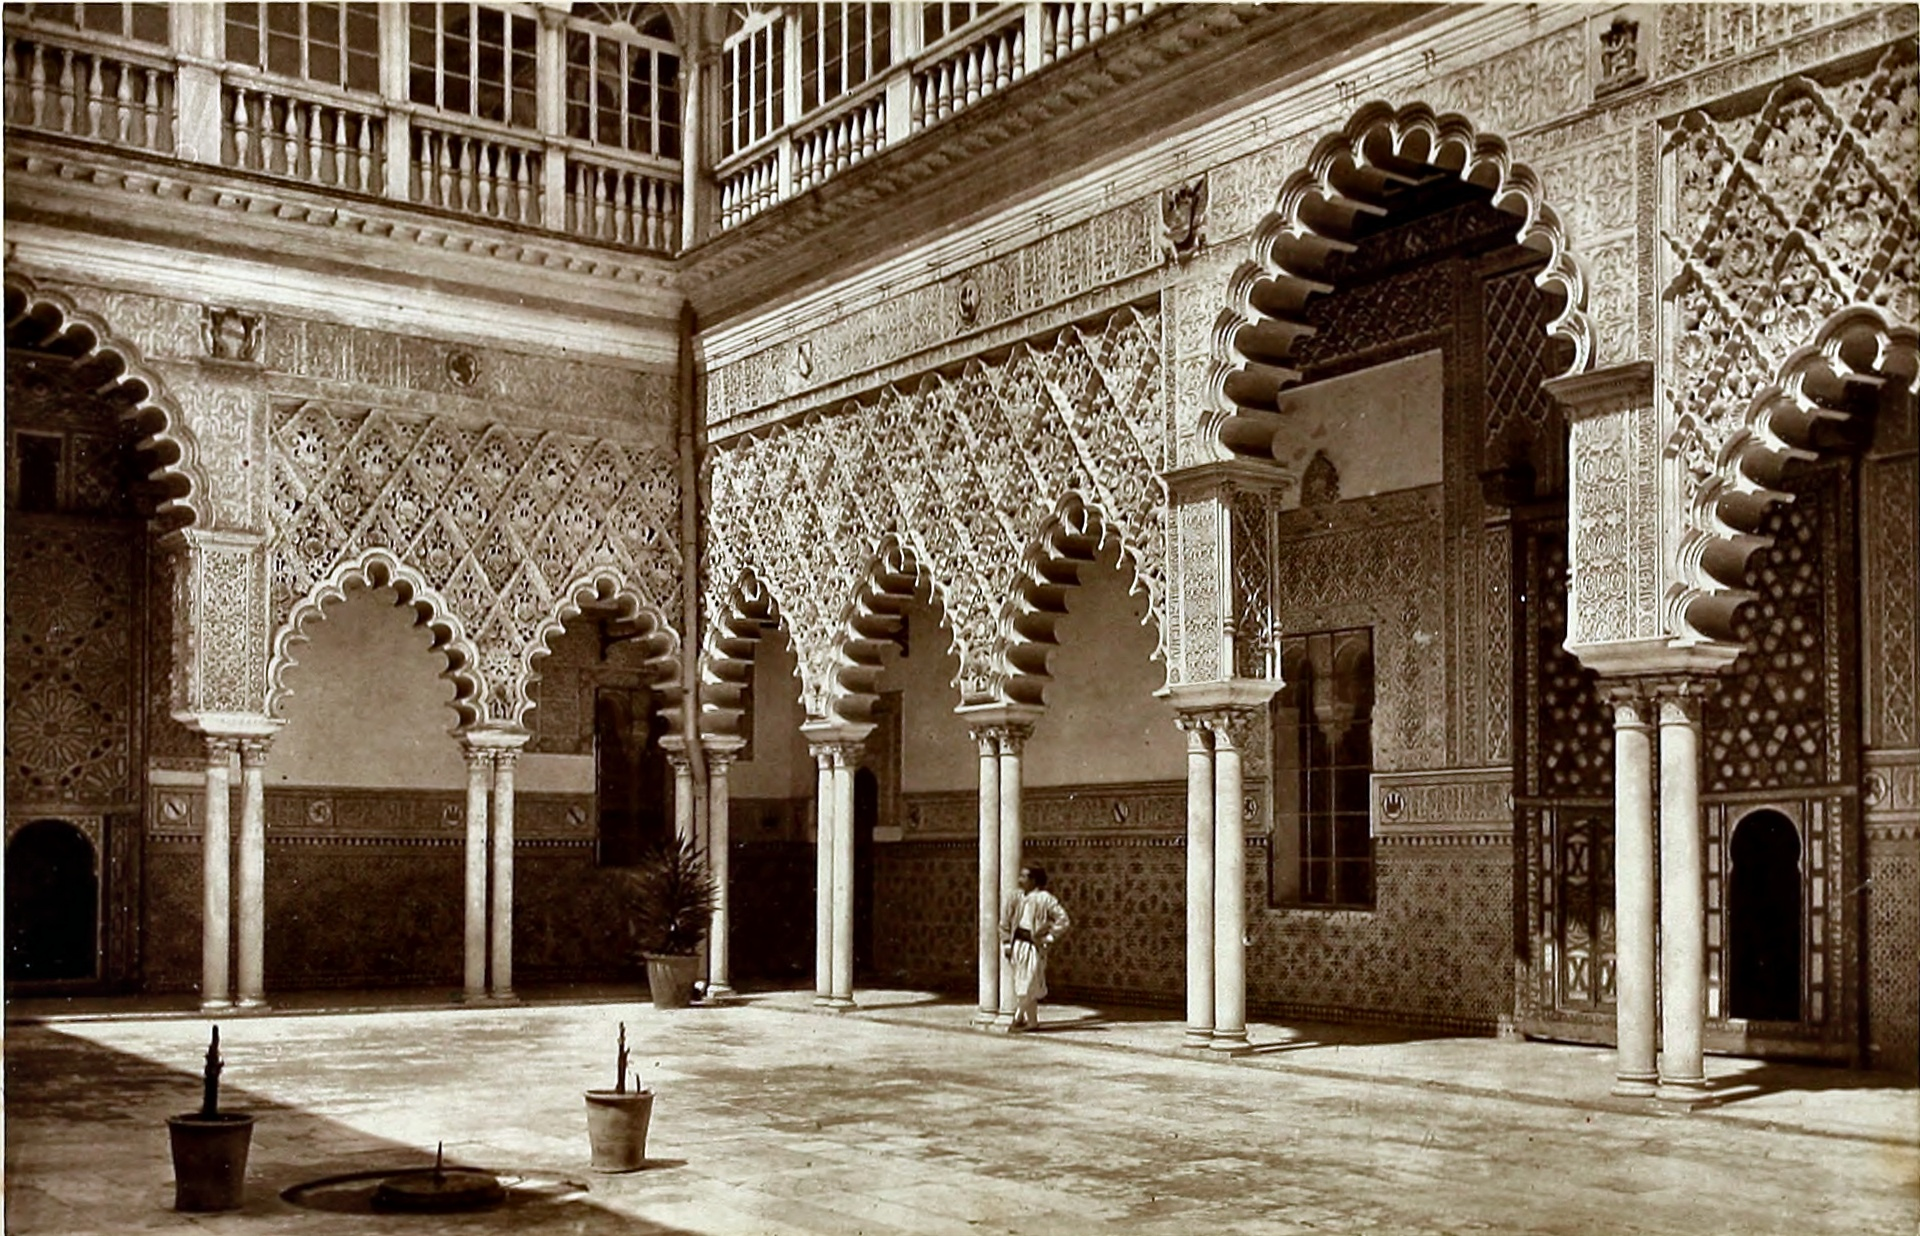 Courtyard of the Alcazar, Seville, Spain about 1875